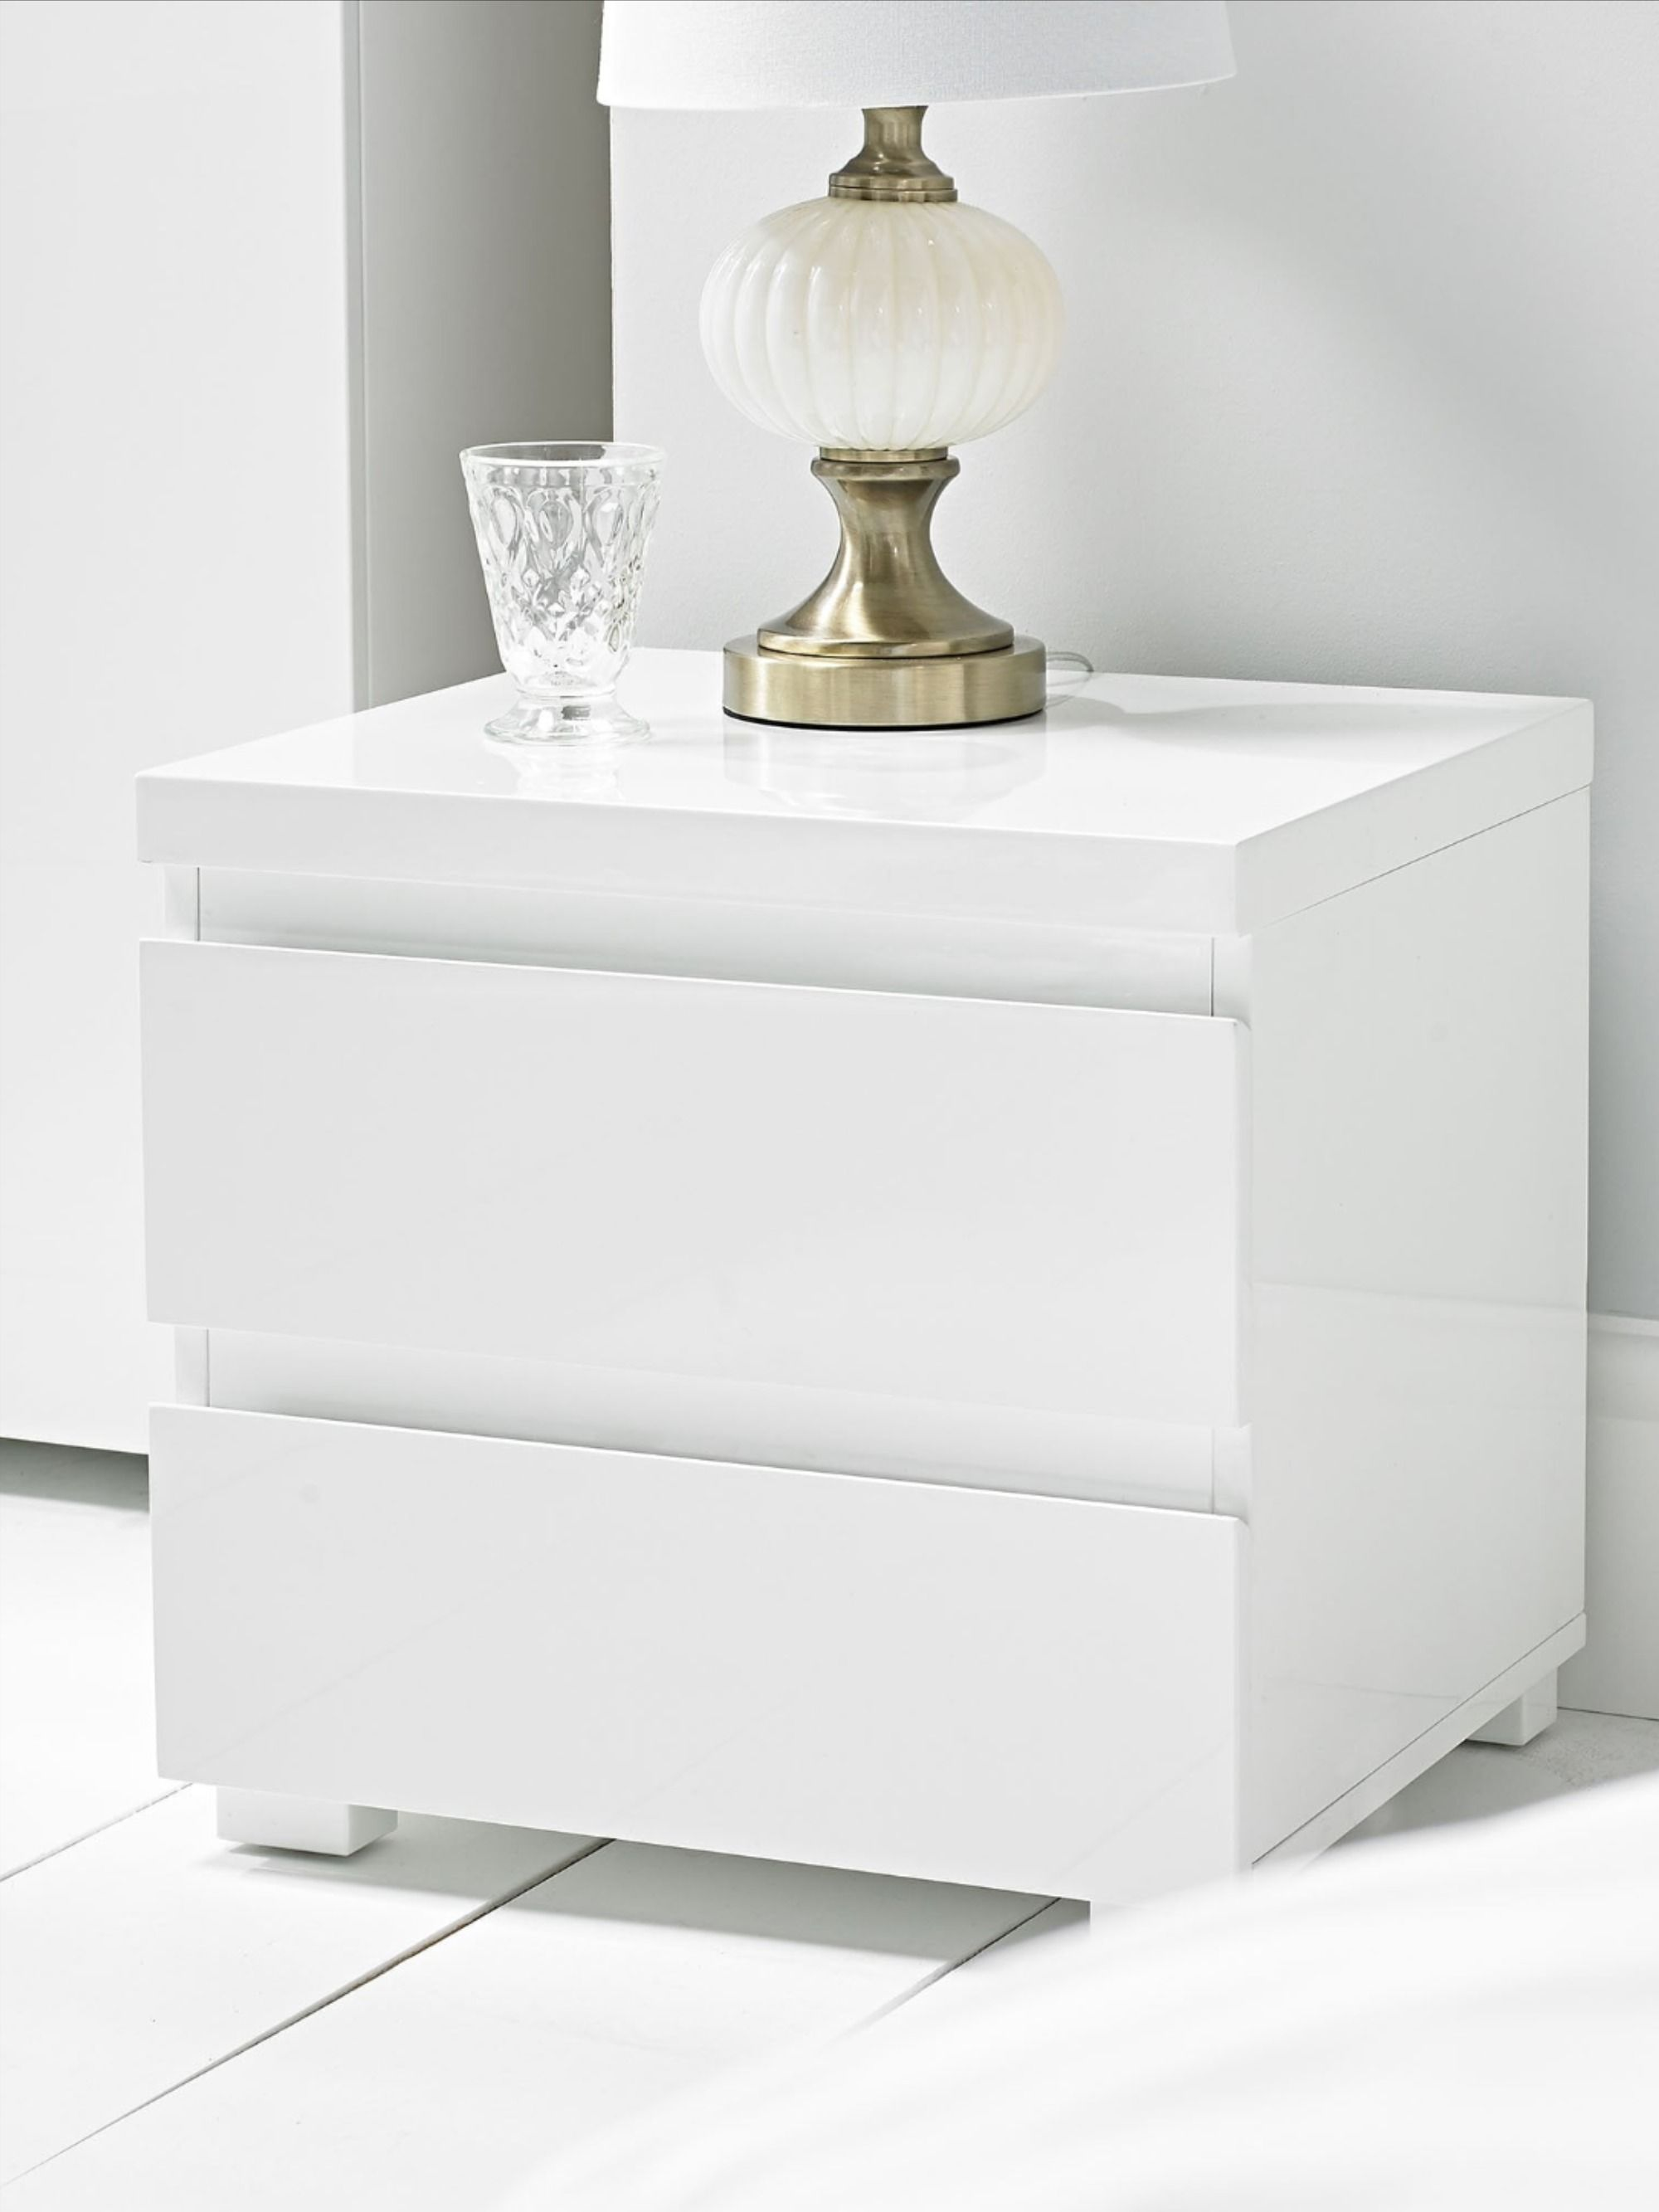 Puro 2 Drawer Bedside Cabinet White White Gloss Bedroom Furniture White Gloss Bedroom White Gloss Bedside Table